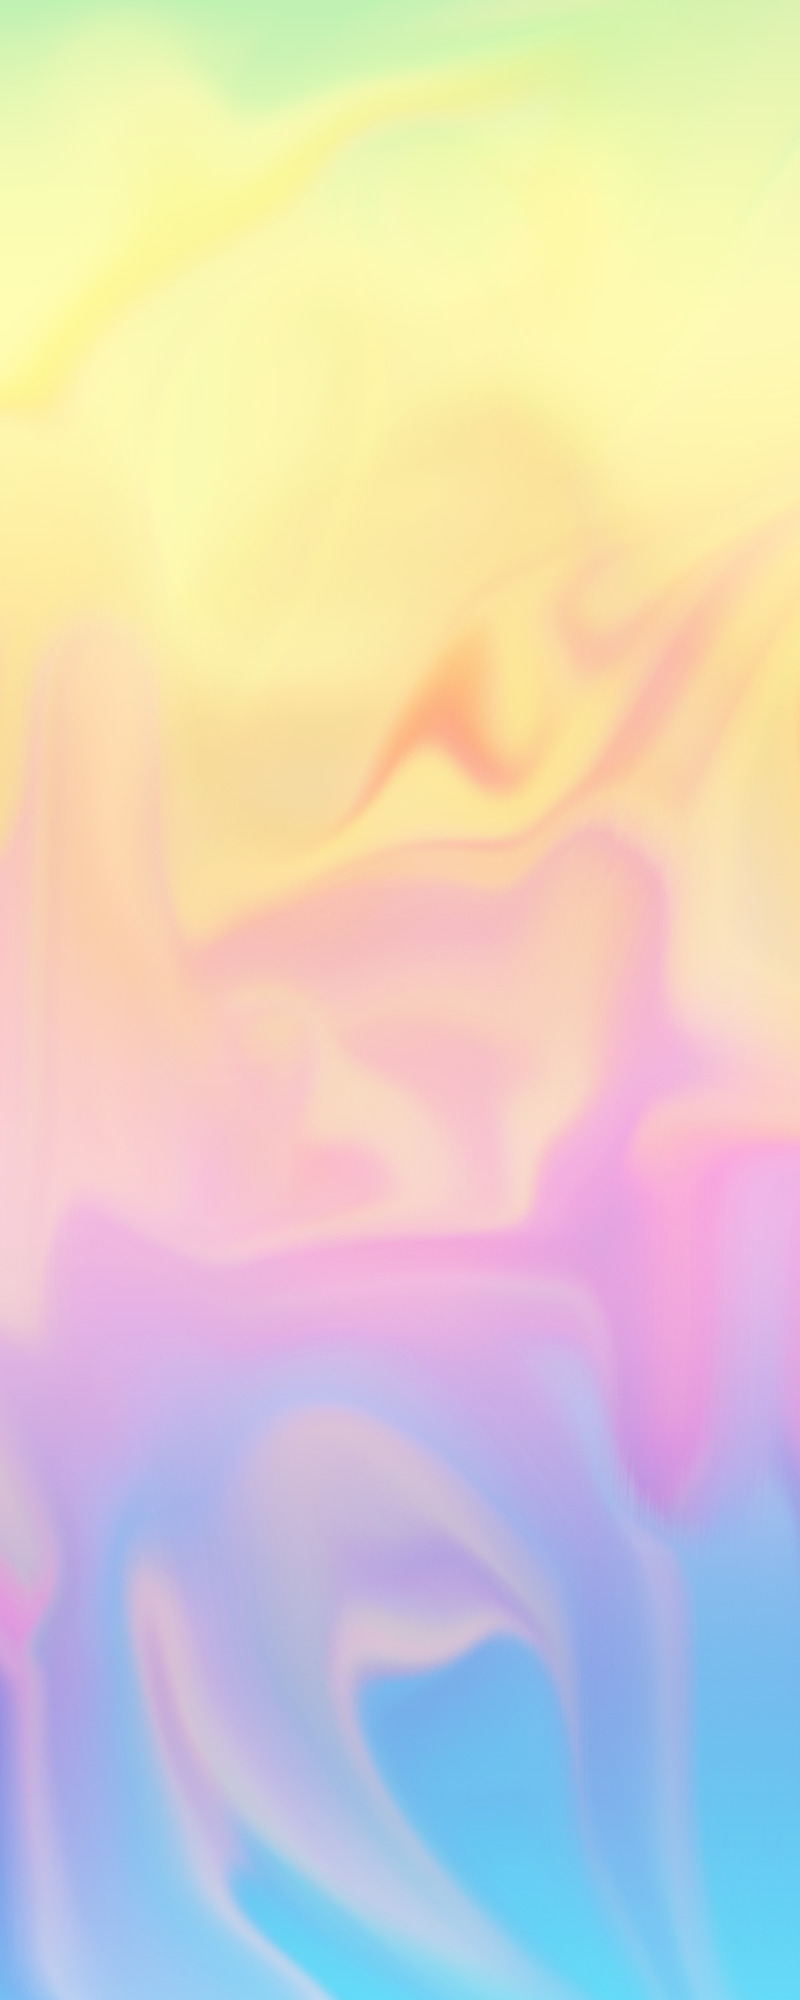 Pastel Soft Grunge Background Tumblr image gallery 800x2000